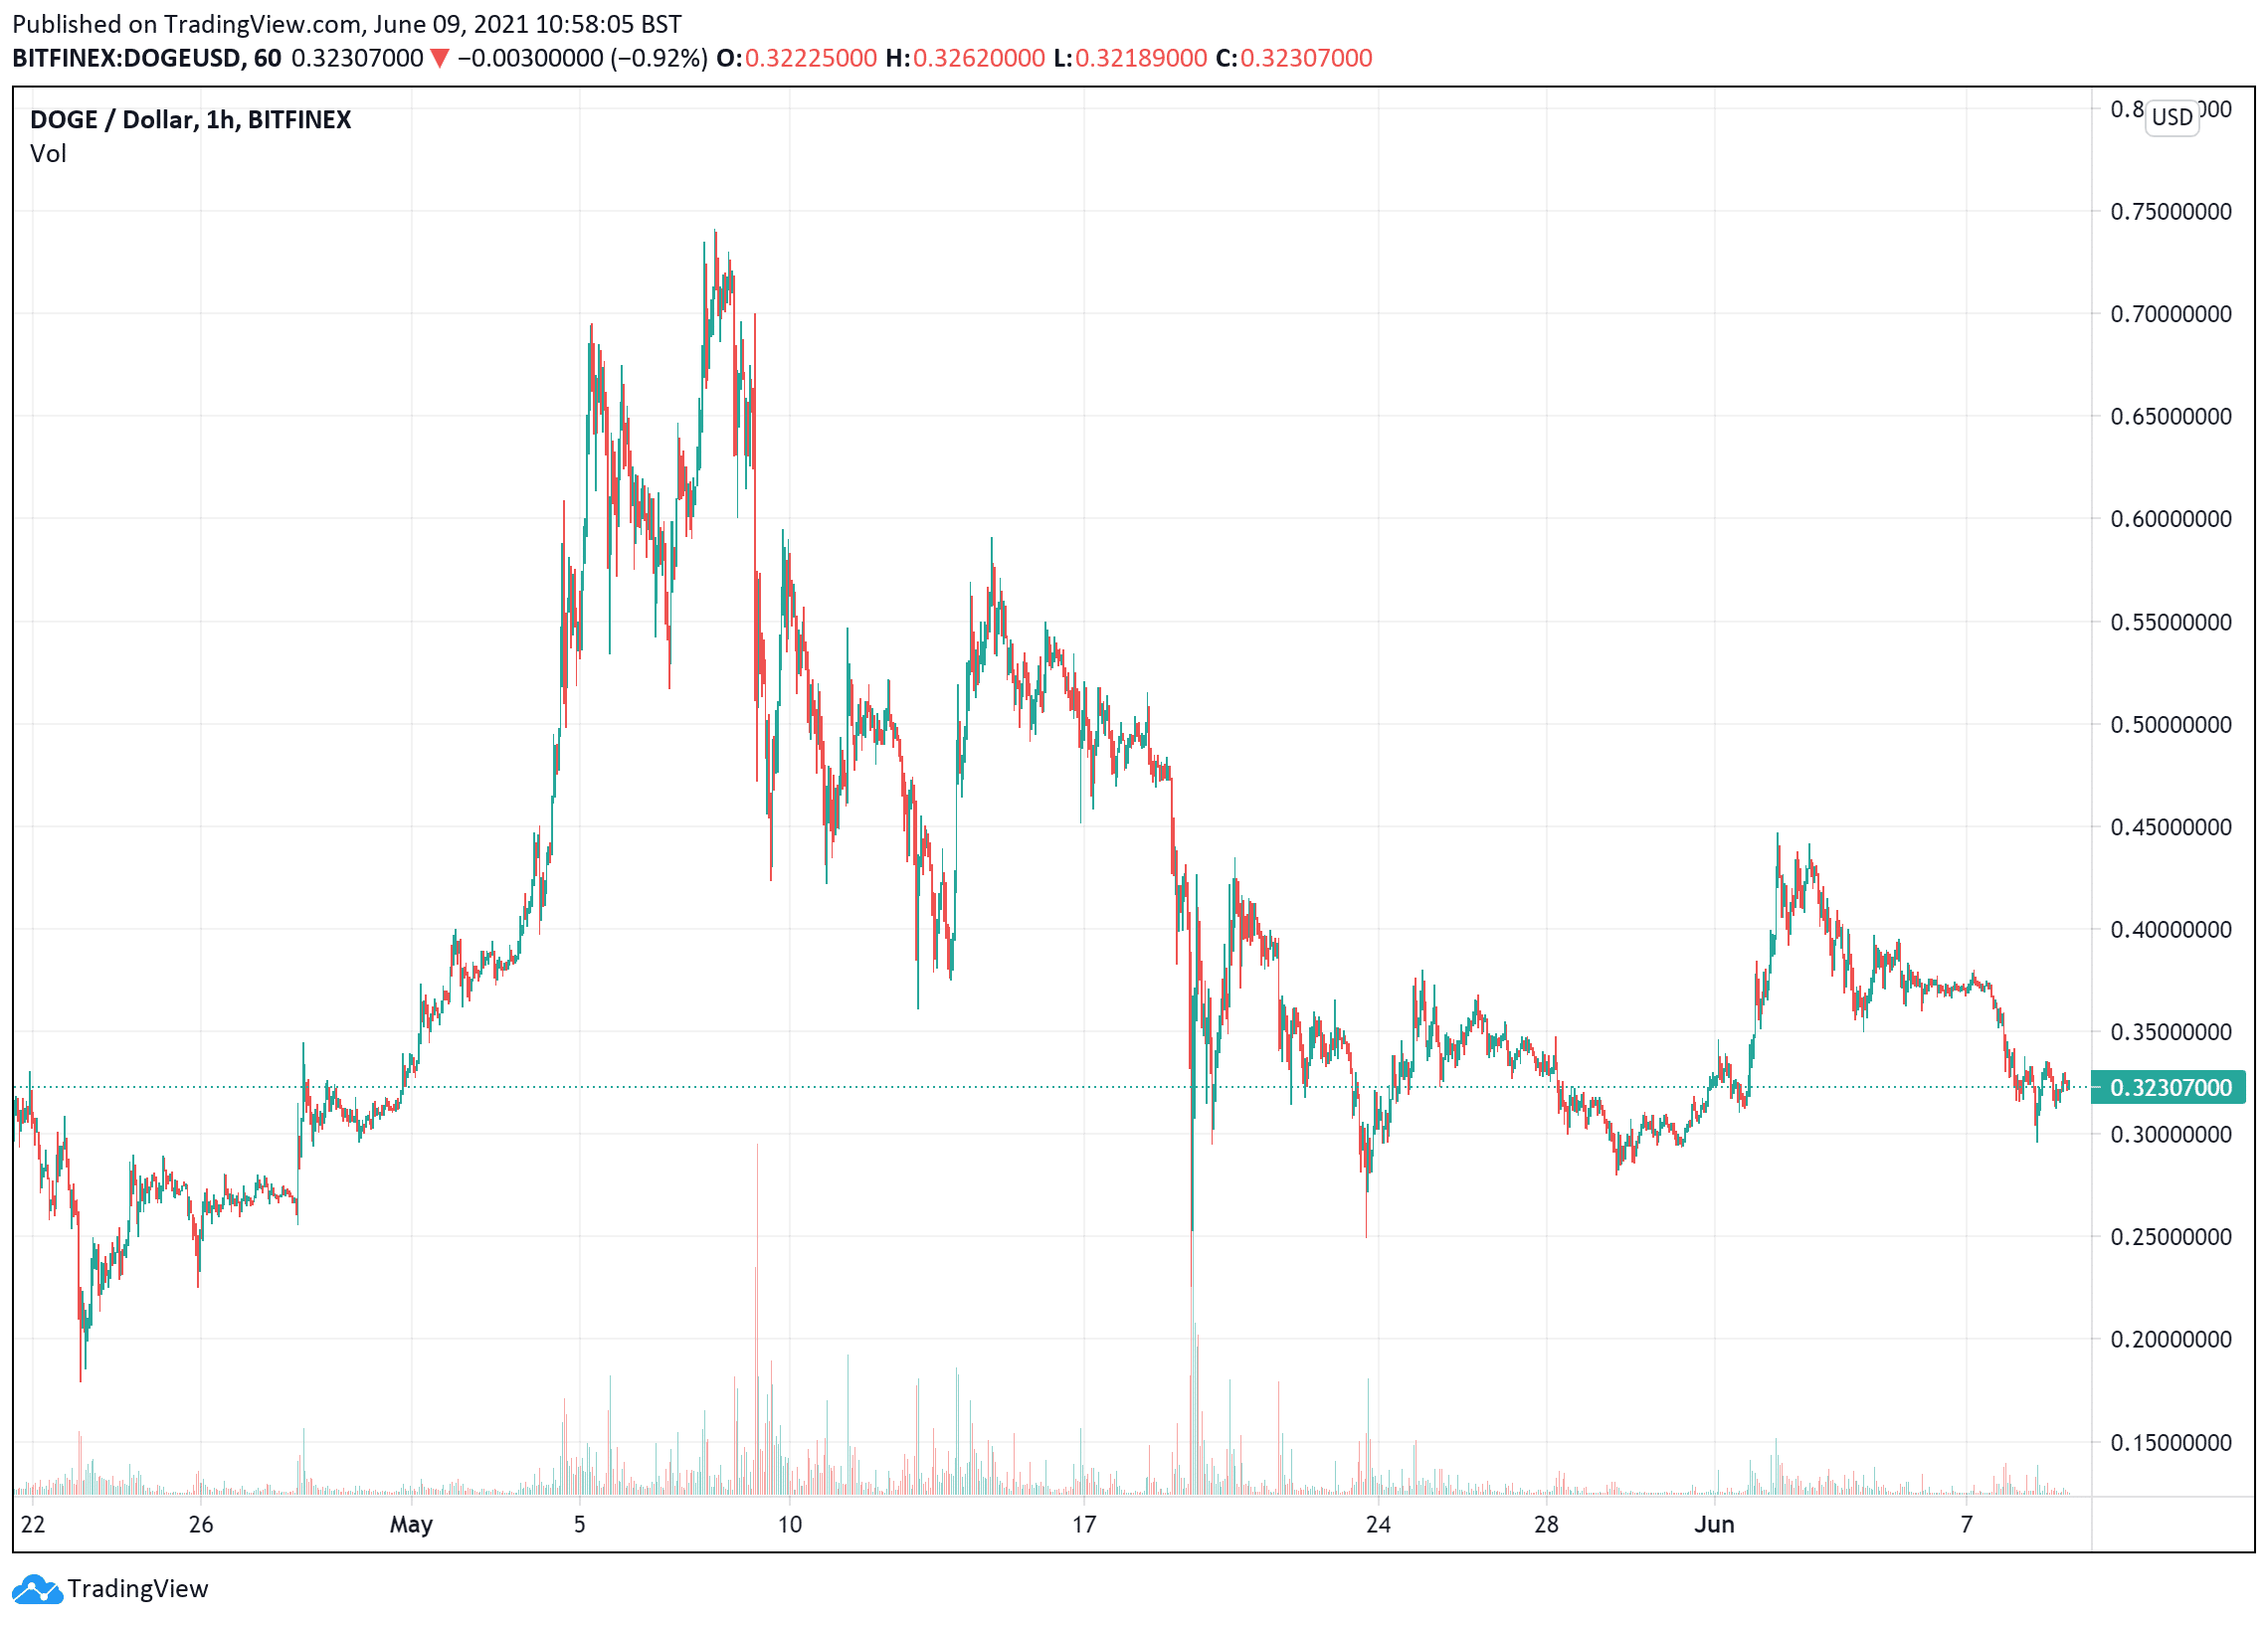 Dogecoin price charts June 9